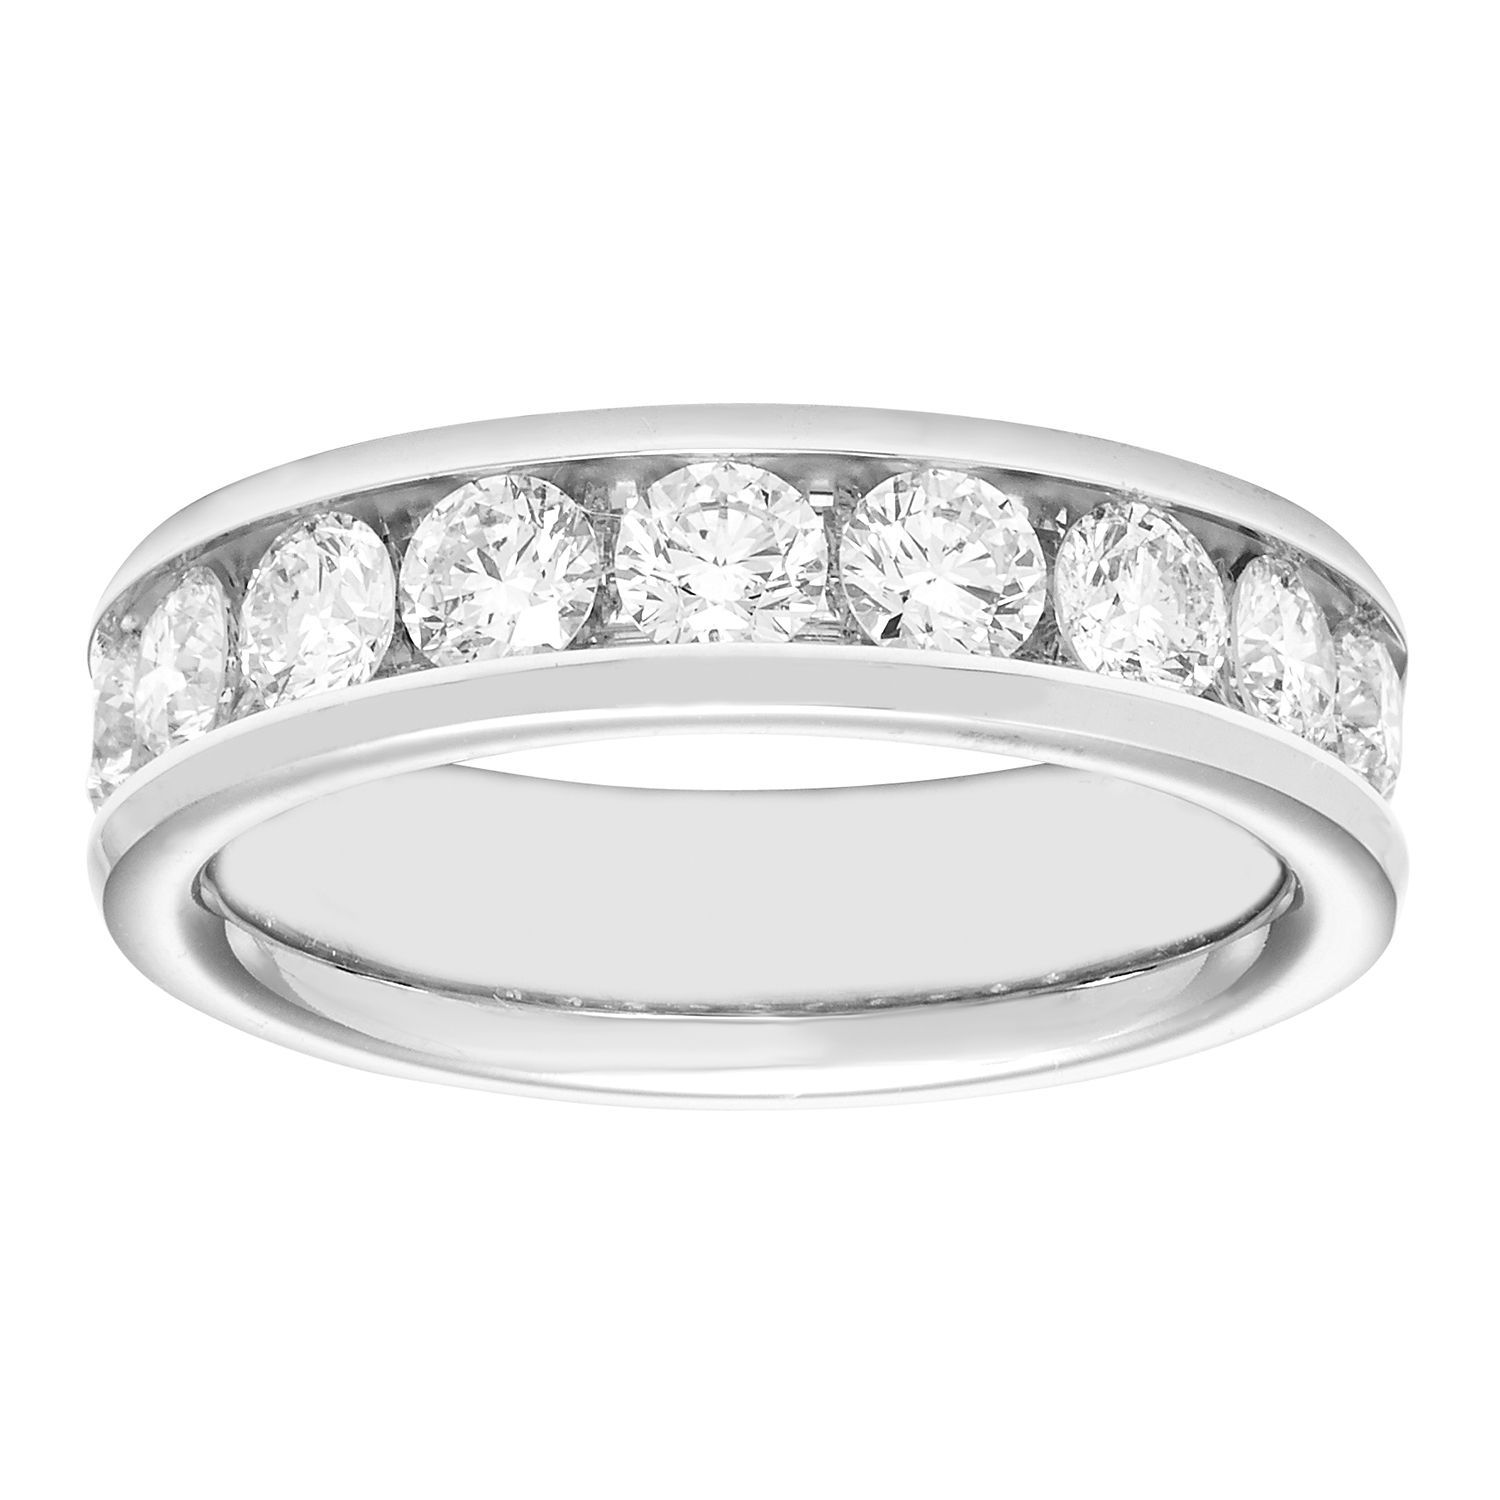 eternity com dp diamond white wedding rings jewellery gold ring amazon jewelry trellis anniversary